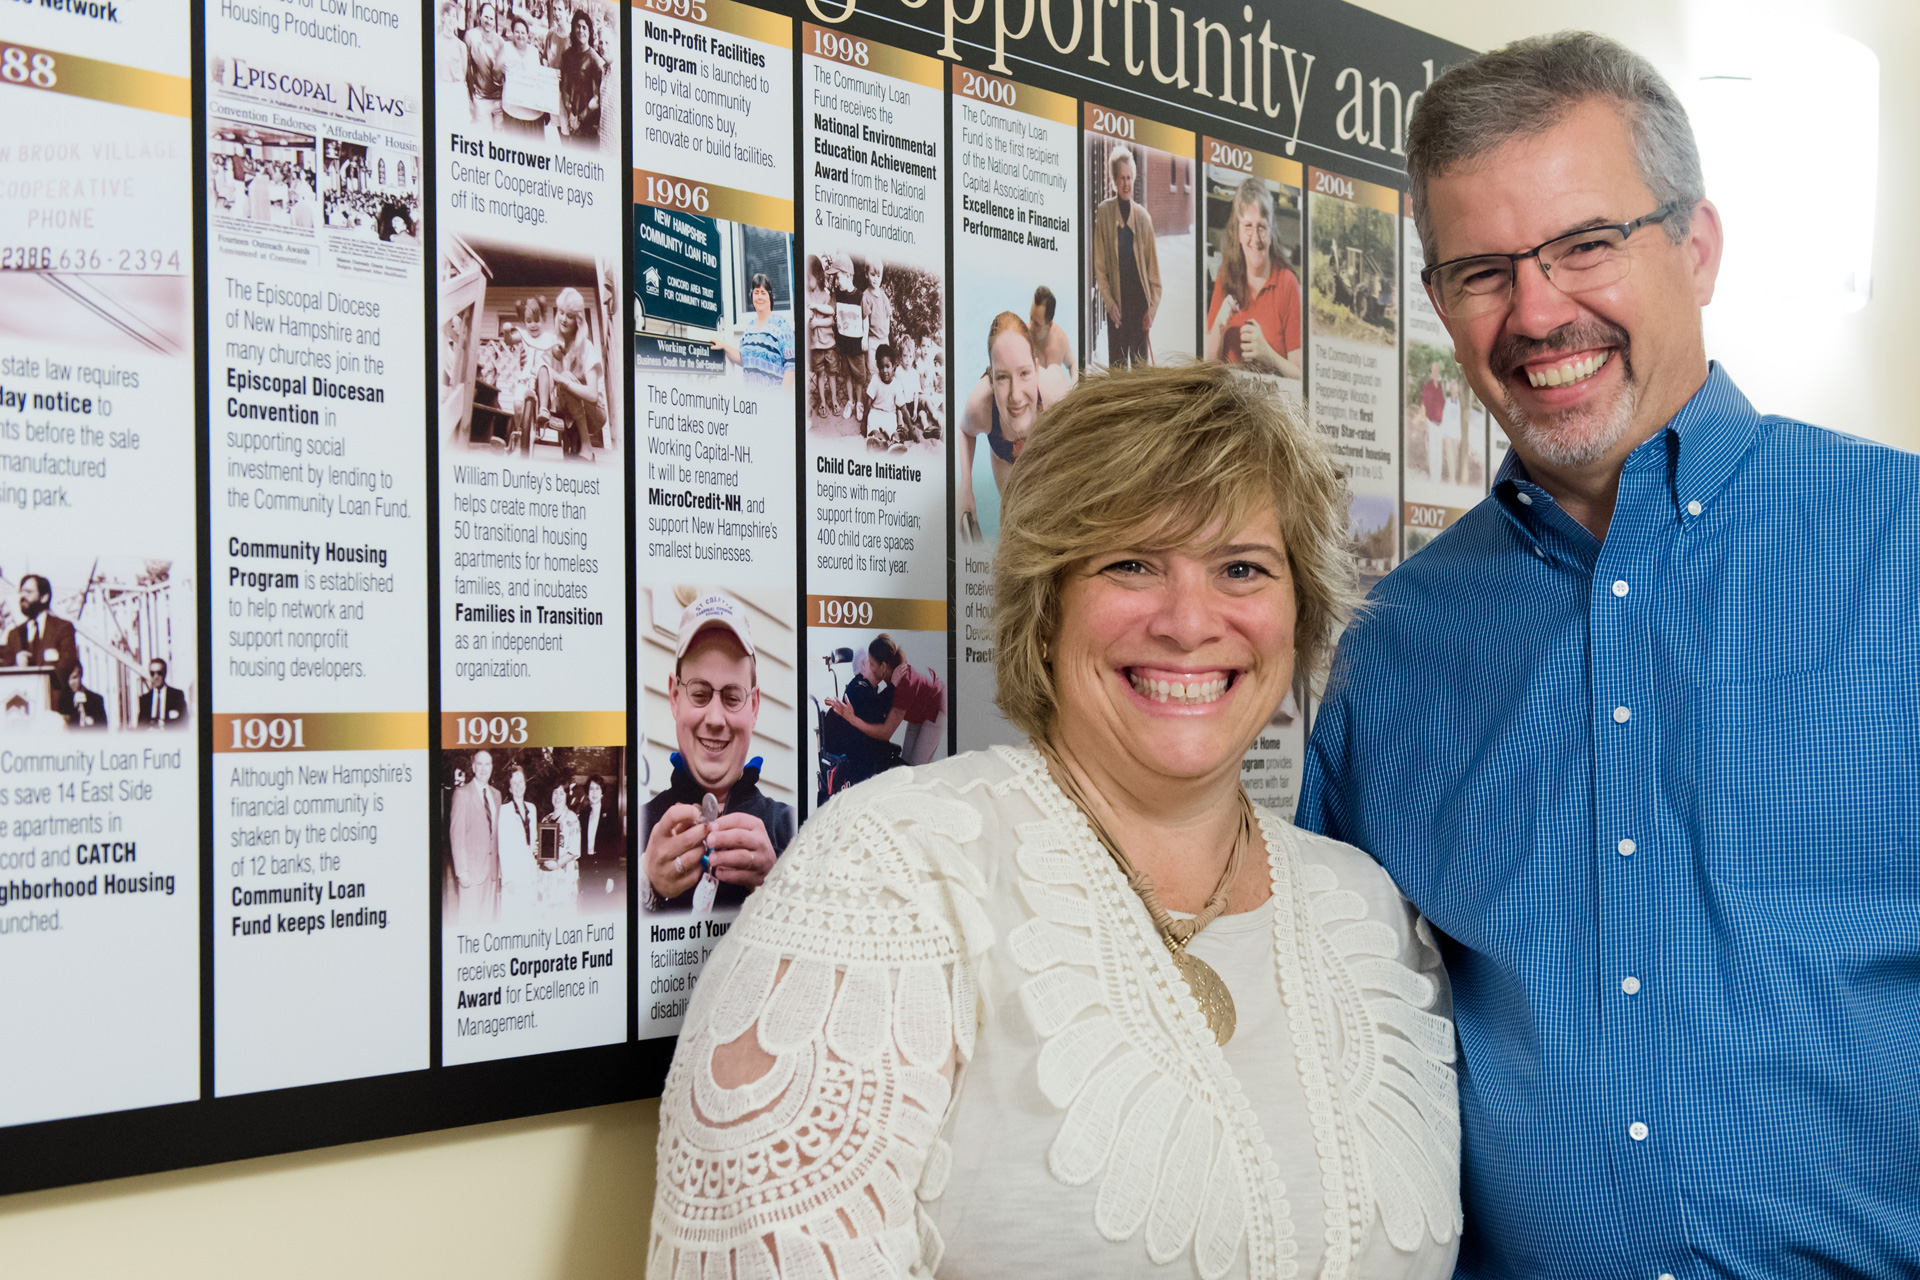 Man and woman posed in front of Community Loan Fund timeline